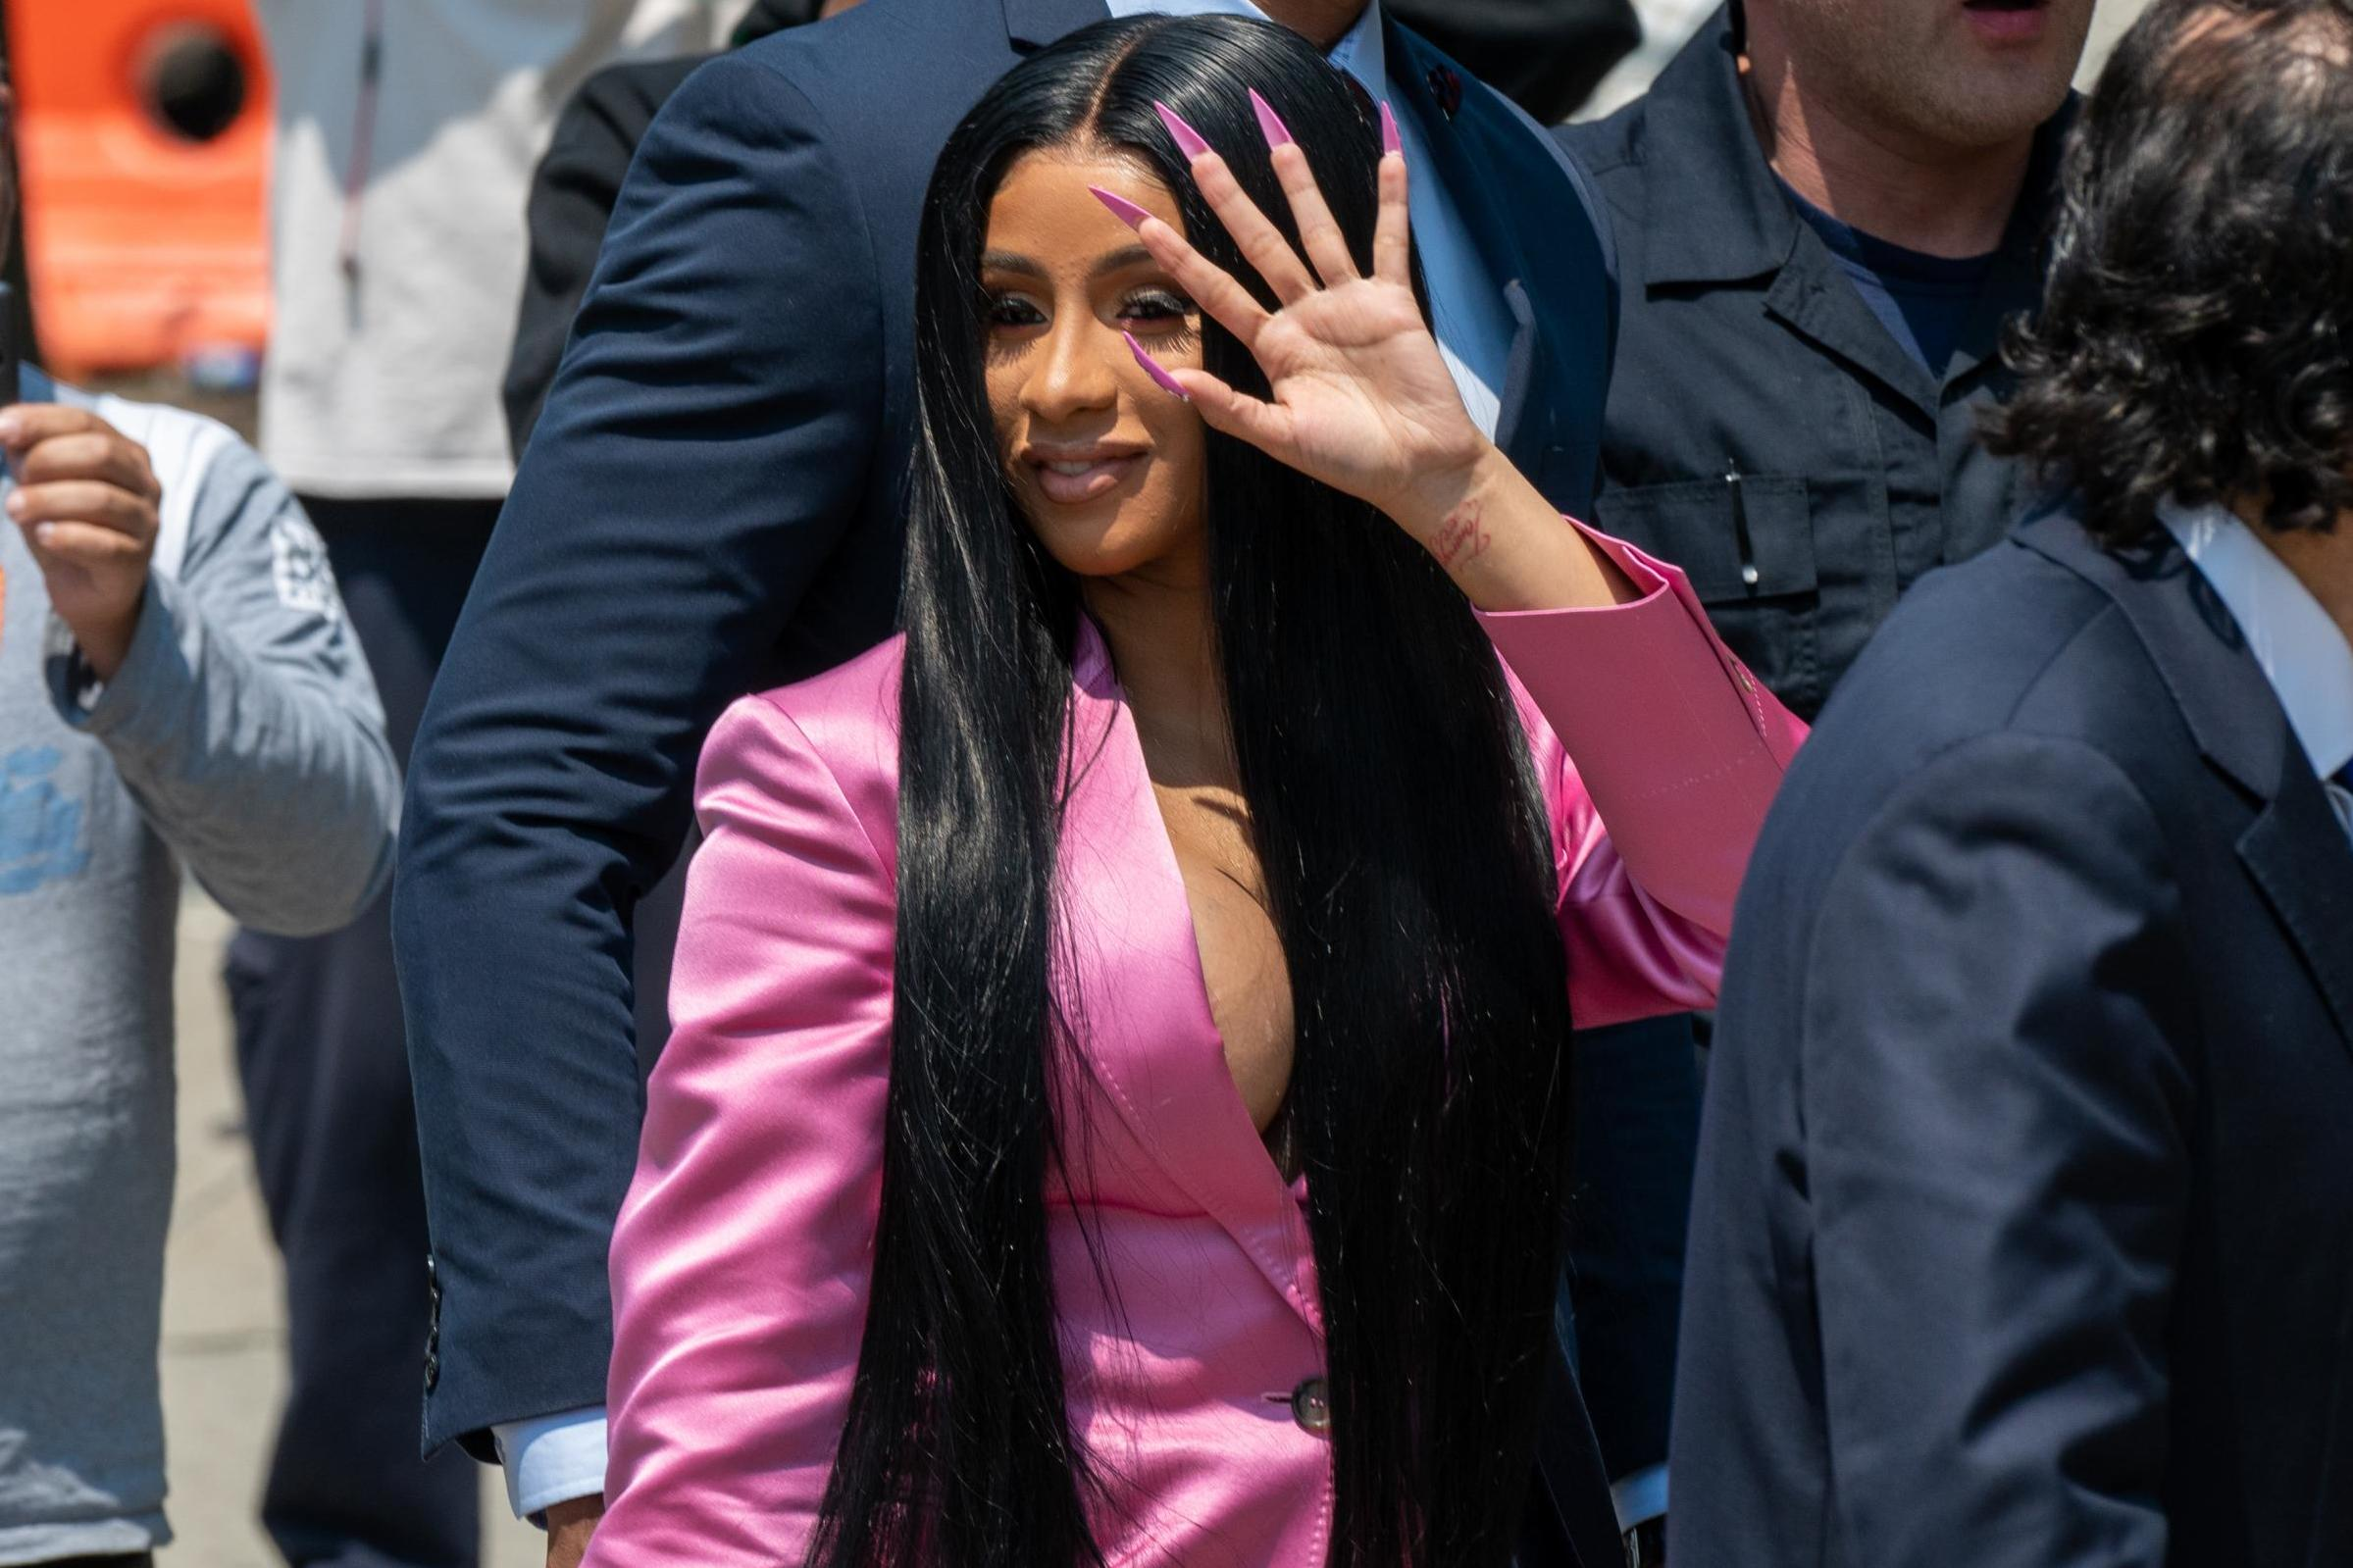 Cardi B: Security threat forces rapper to cancel arena show at last minute